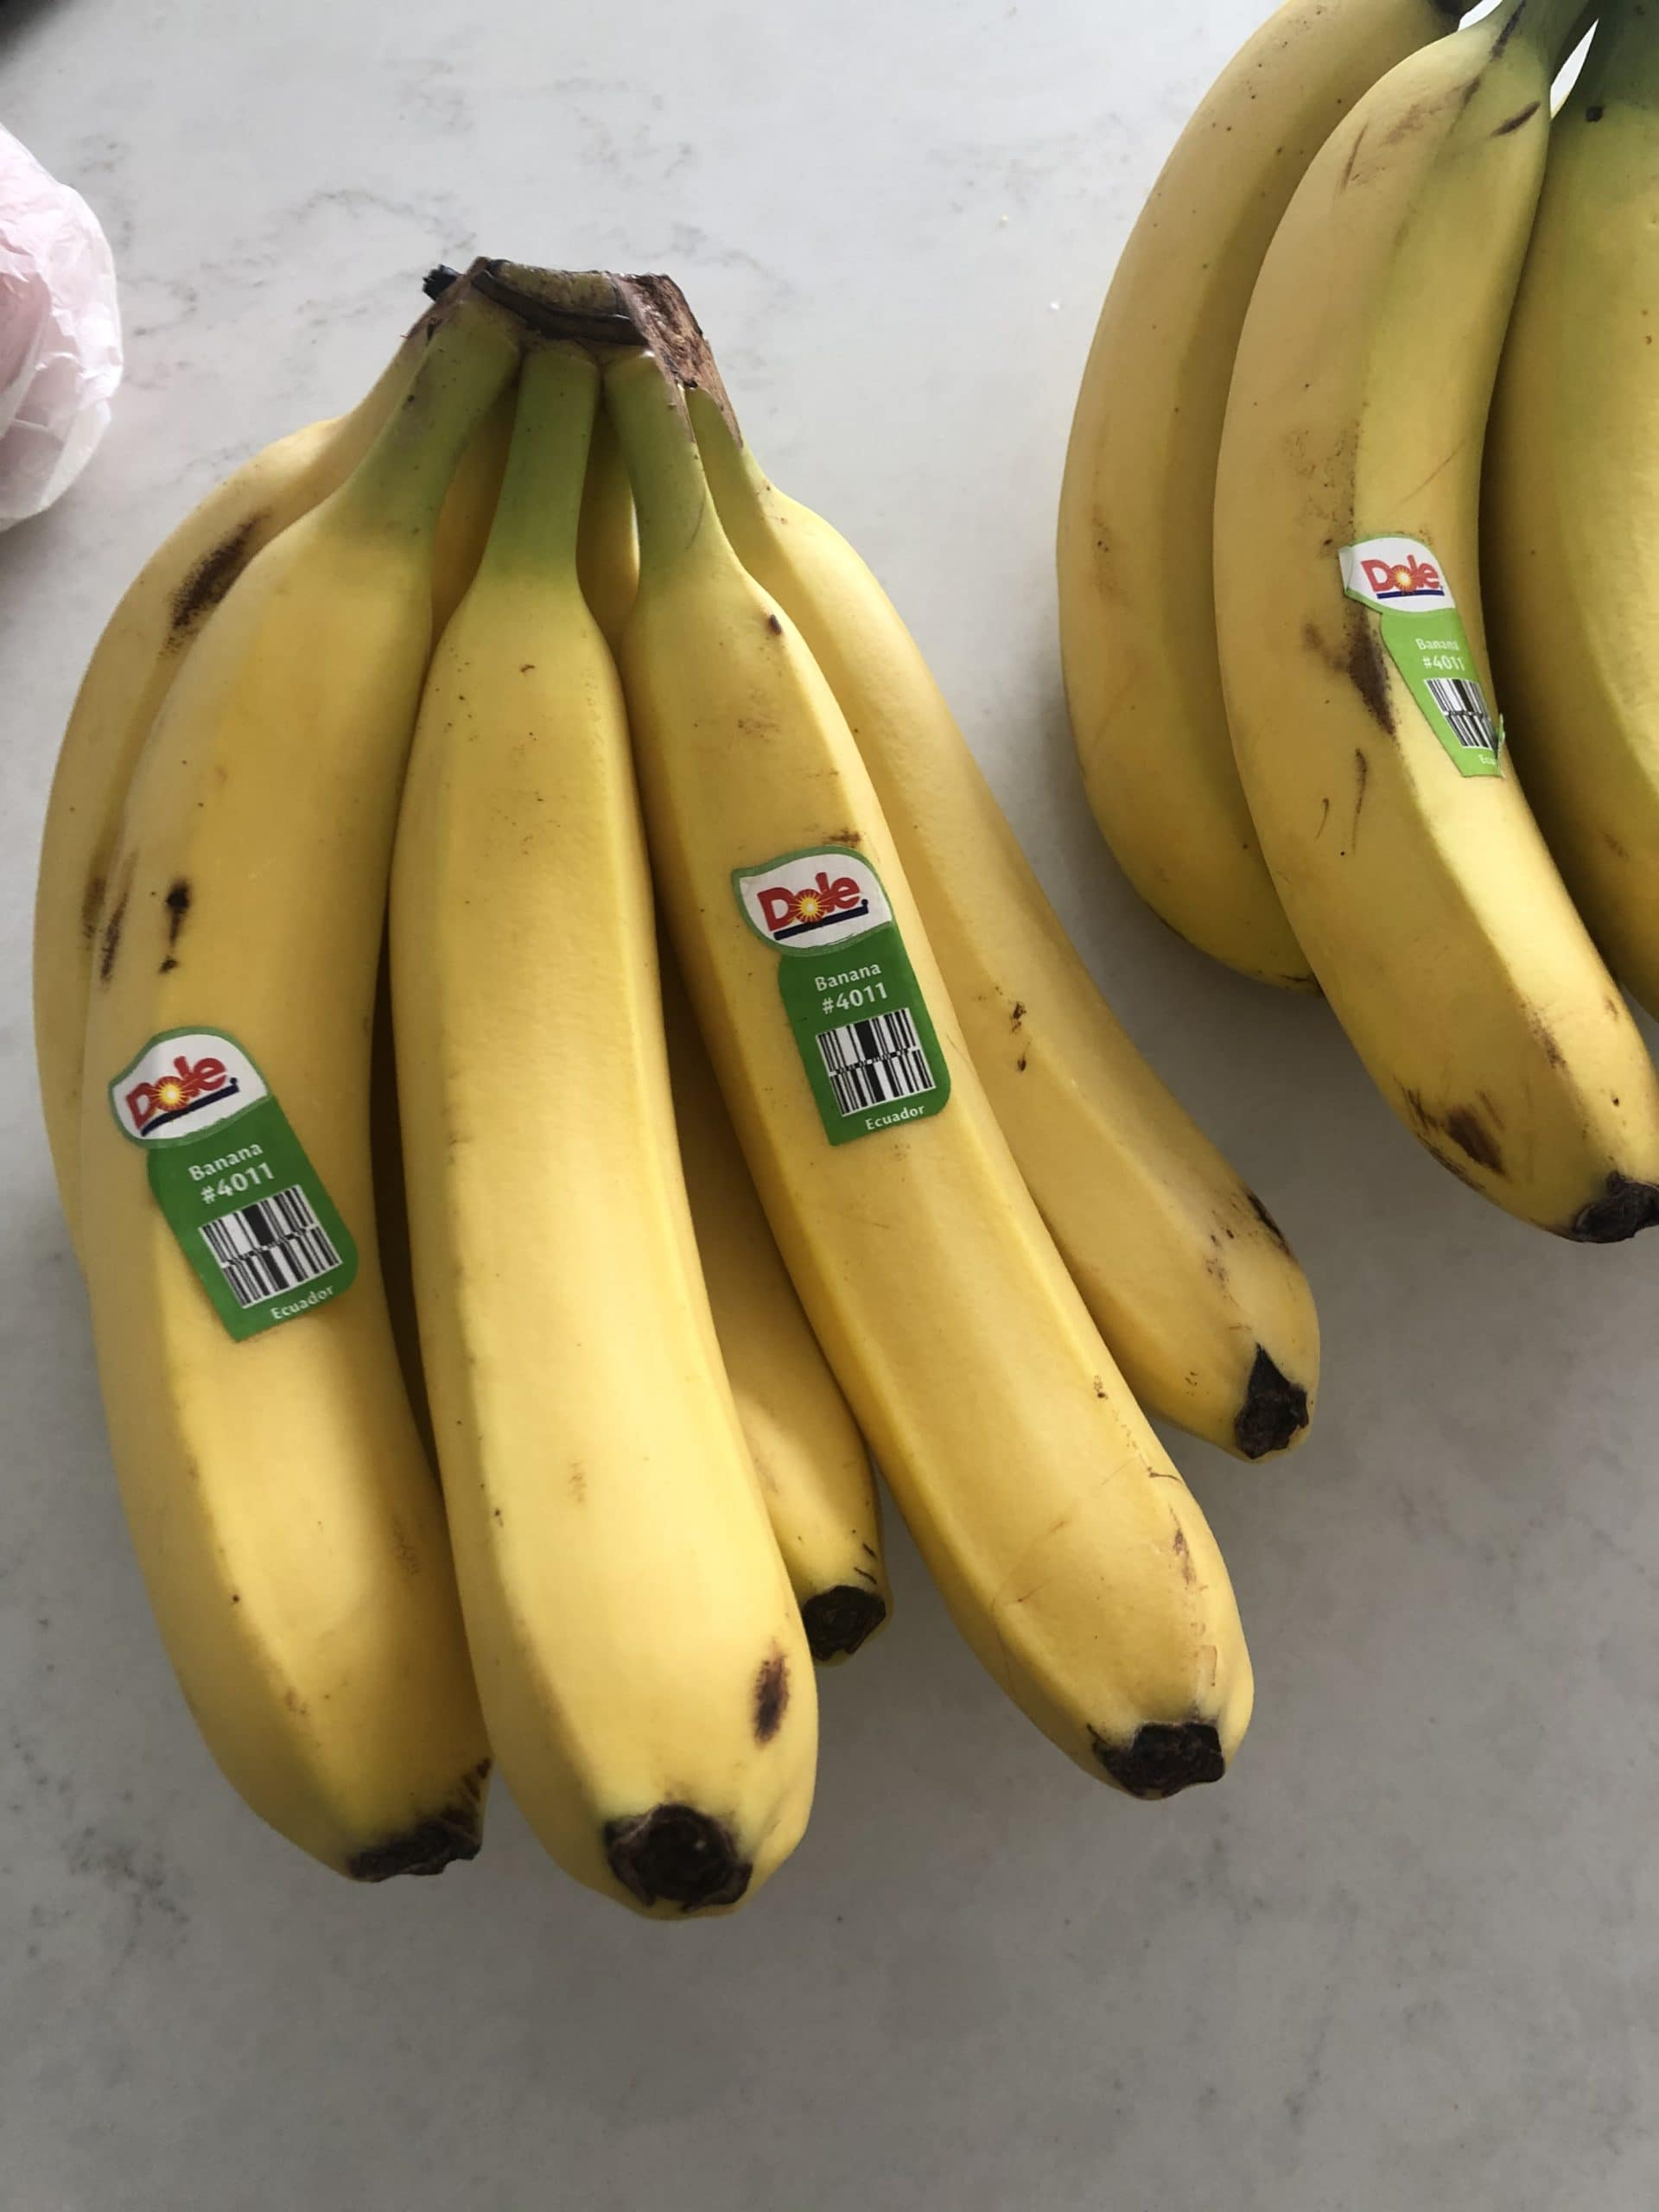 a bunch of bananas on the counter